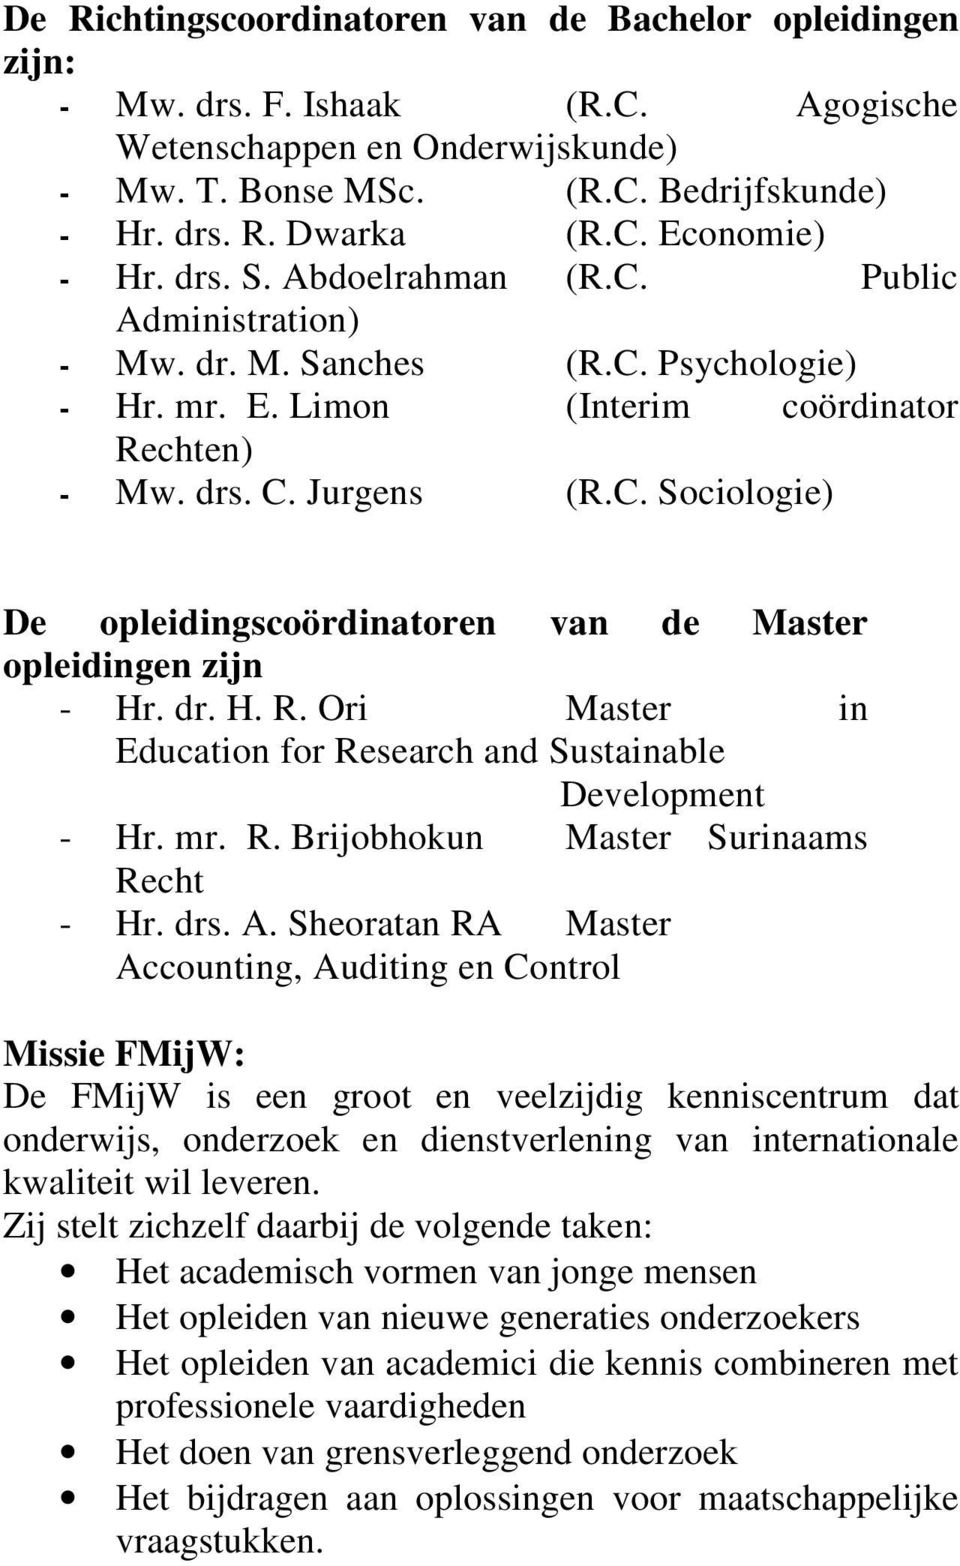 dr. H. R. Ori Master in Education for Research and Sustainable Development - Hr. mr. R. Brijobhokun Master Surinaams Recht - Hr. drs. A.